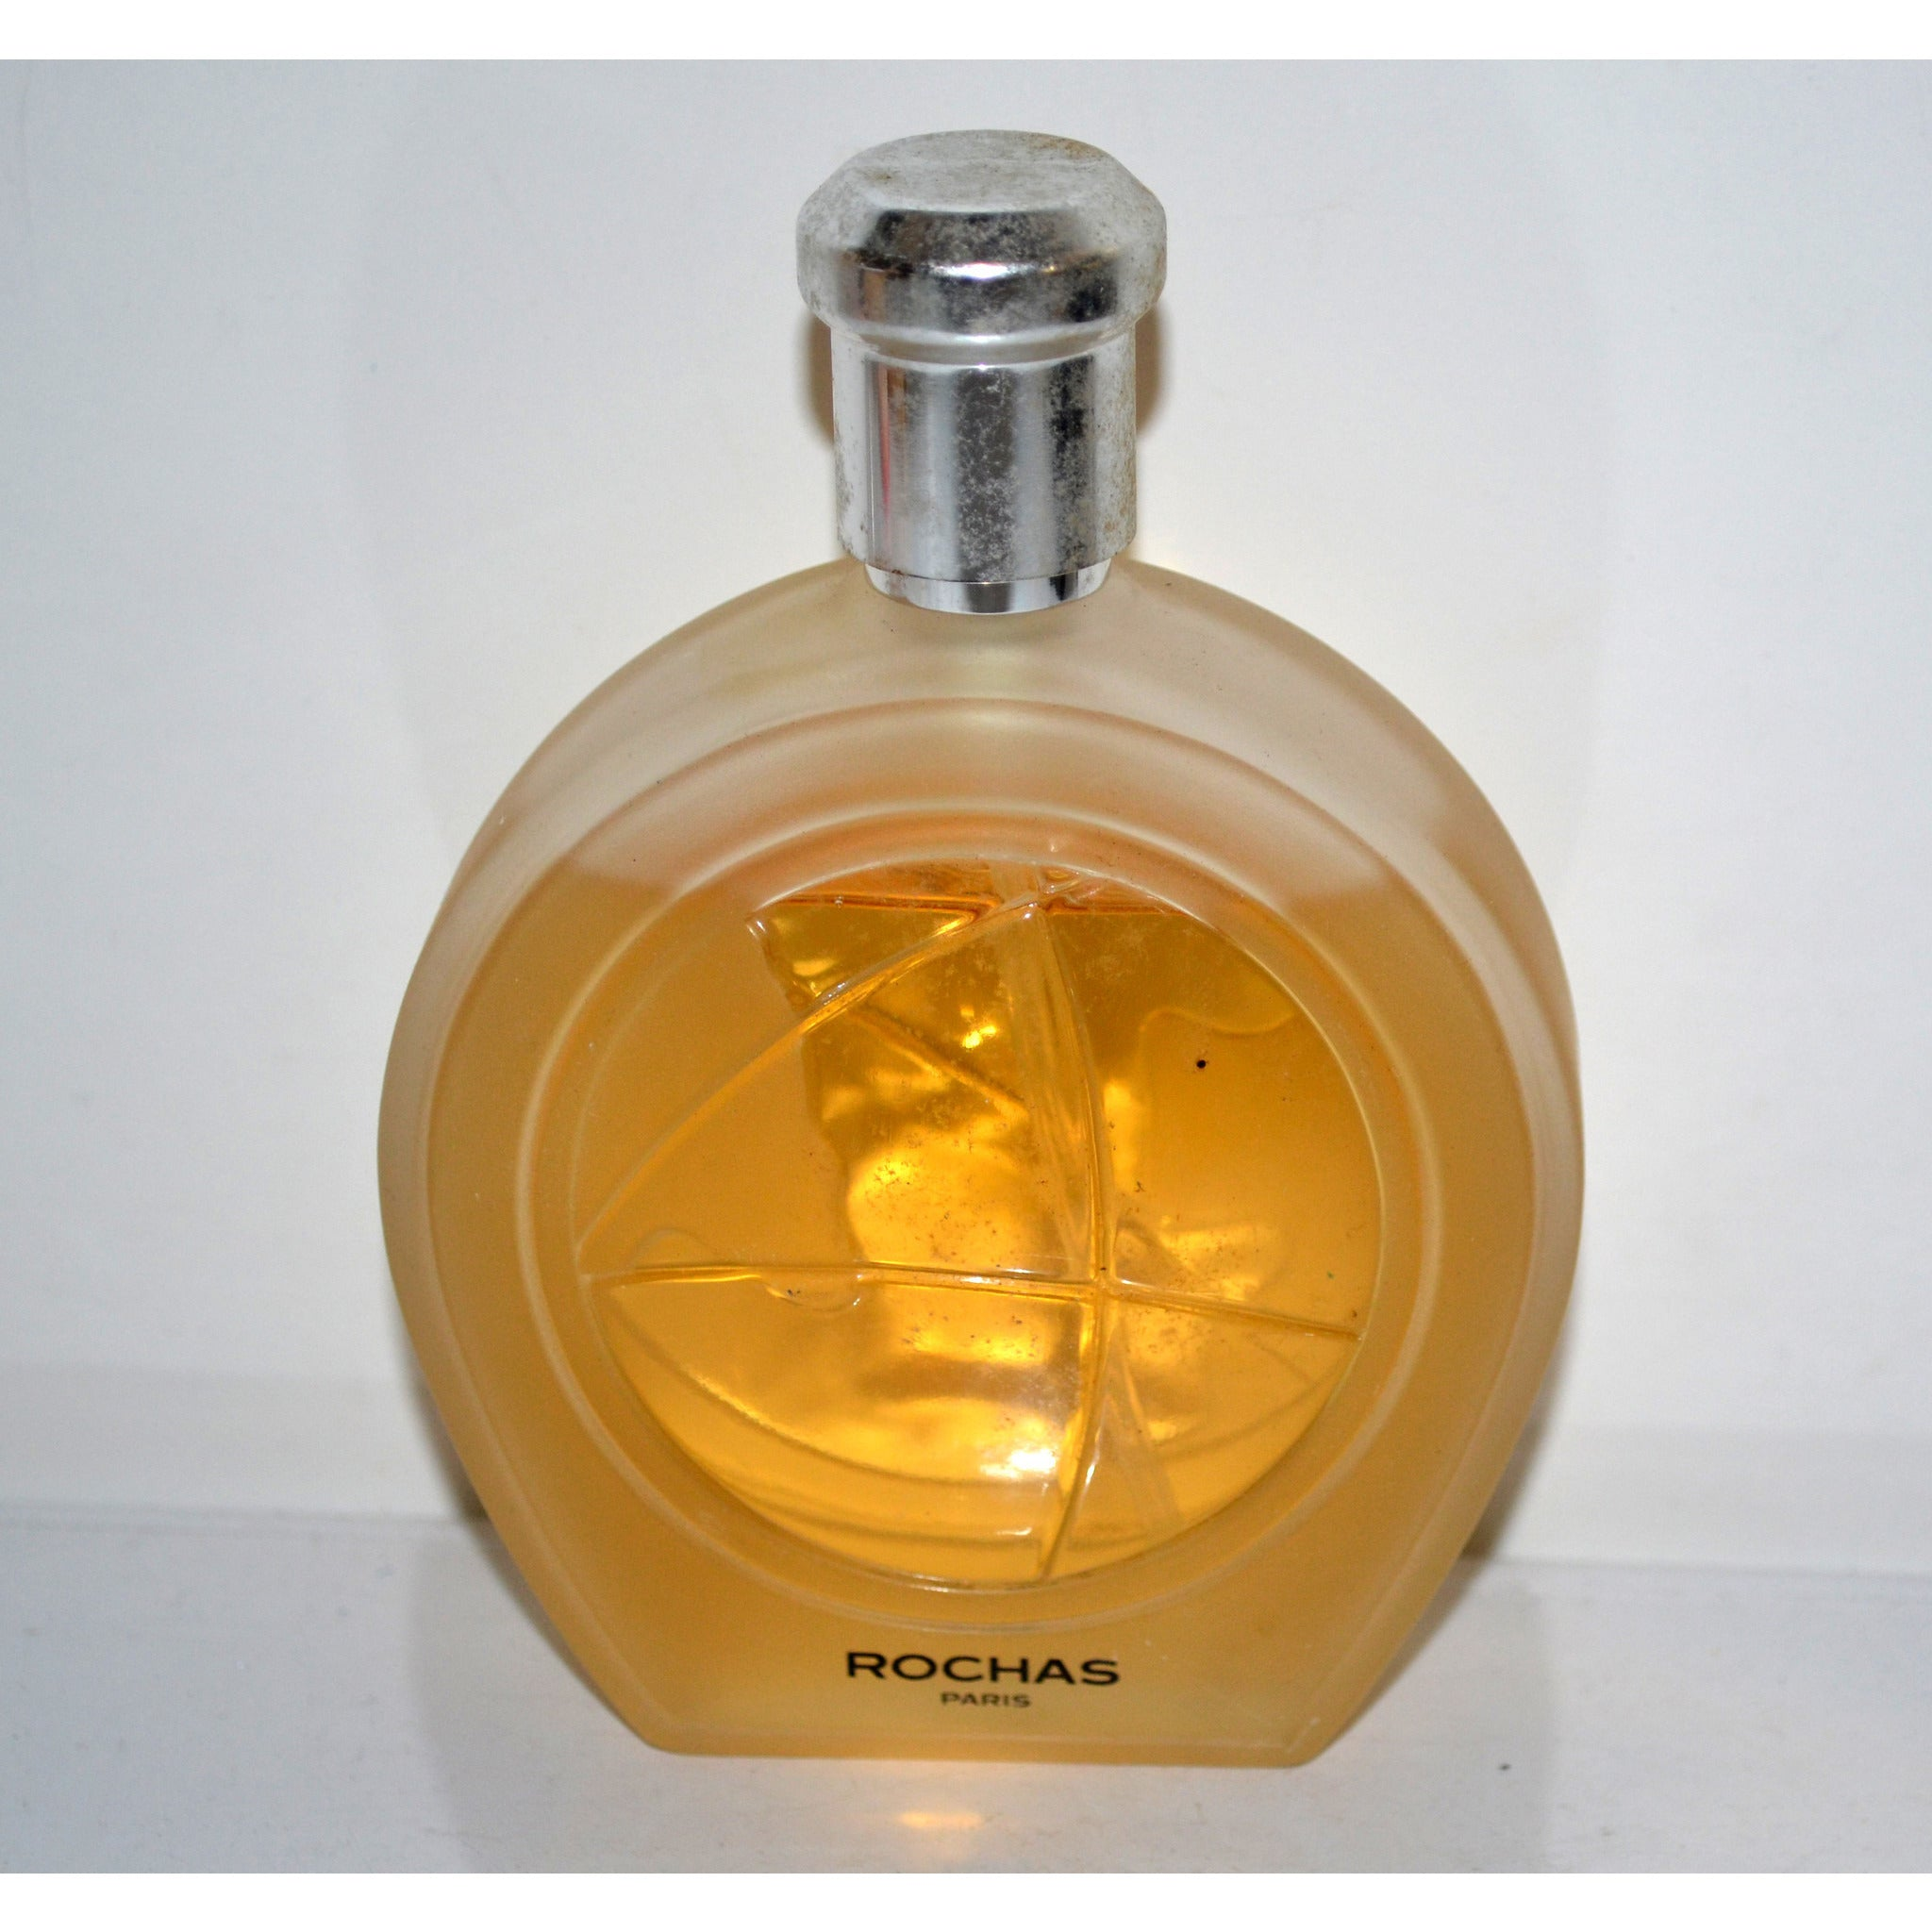 Discontinued Globe Eau De Toilette By Rochas